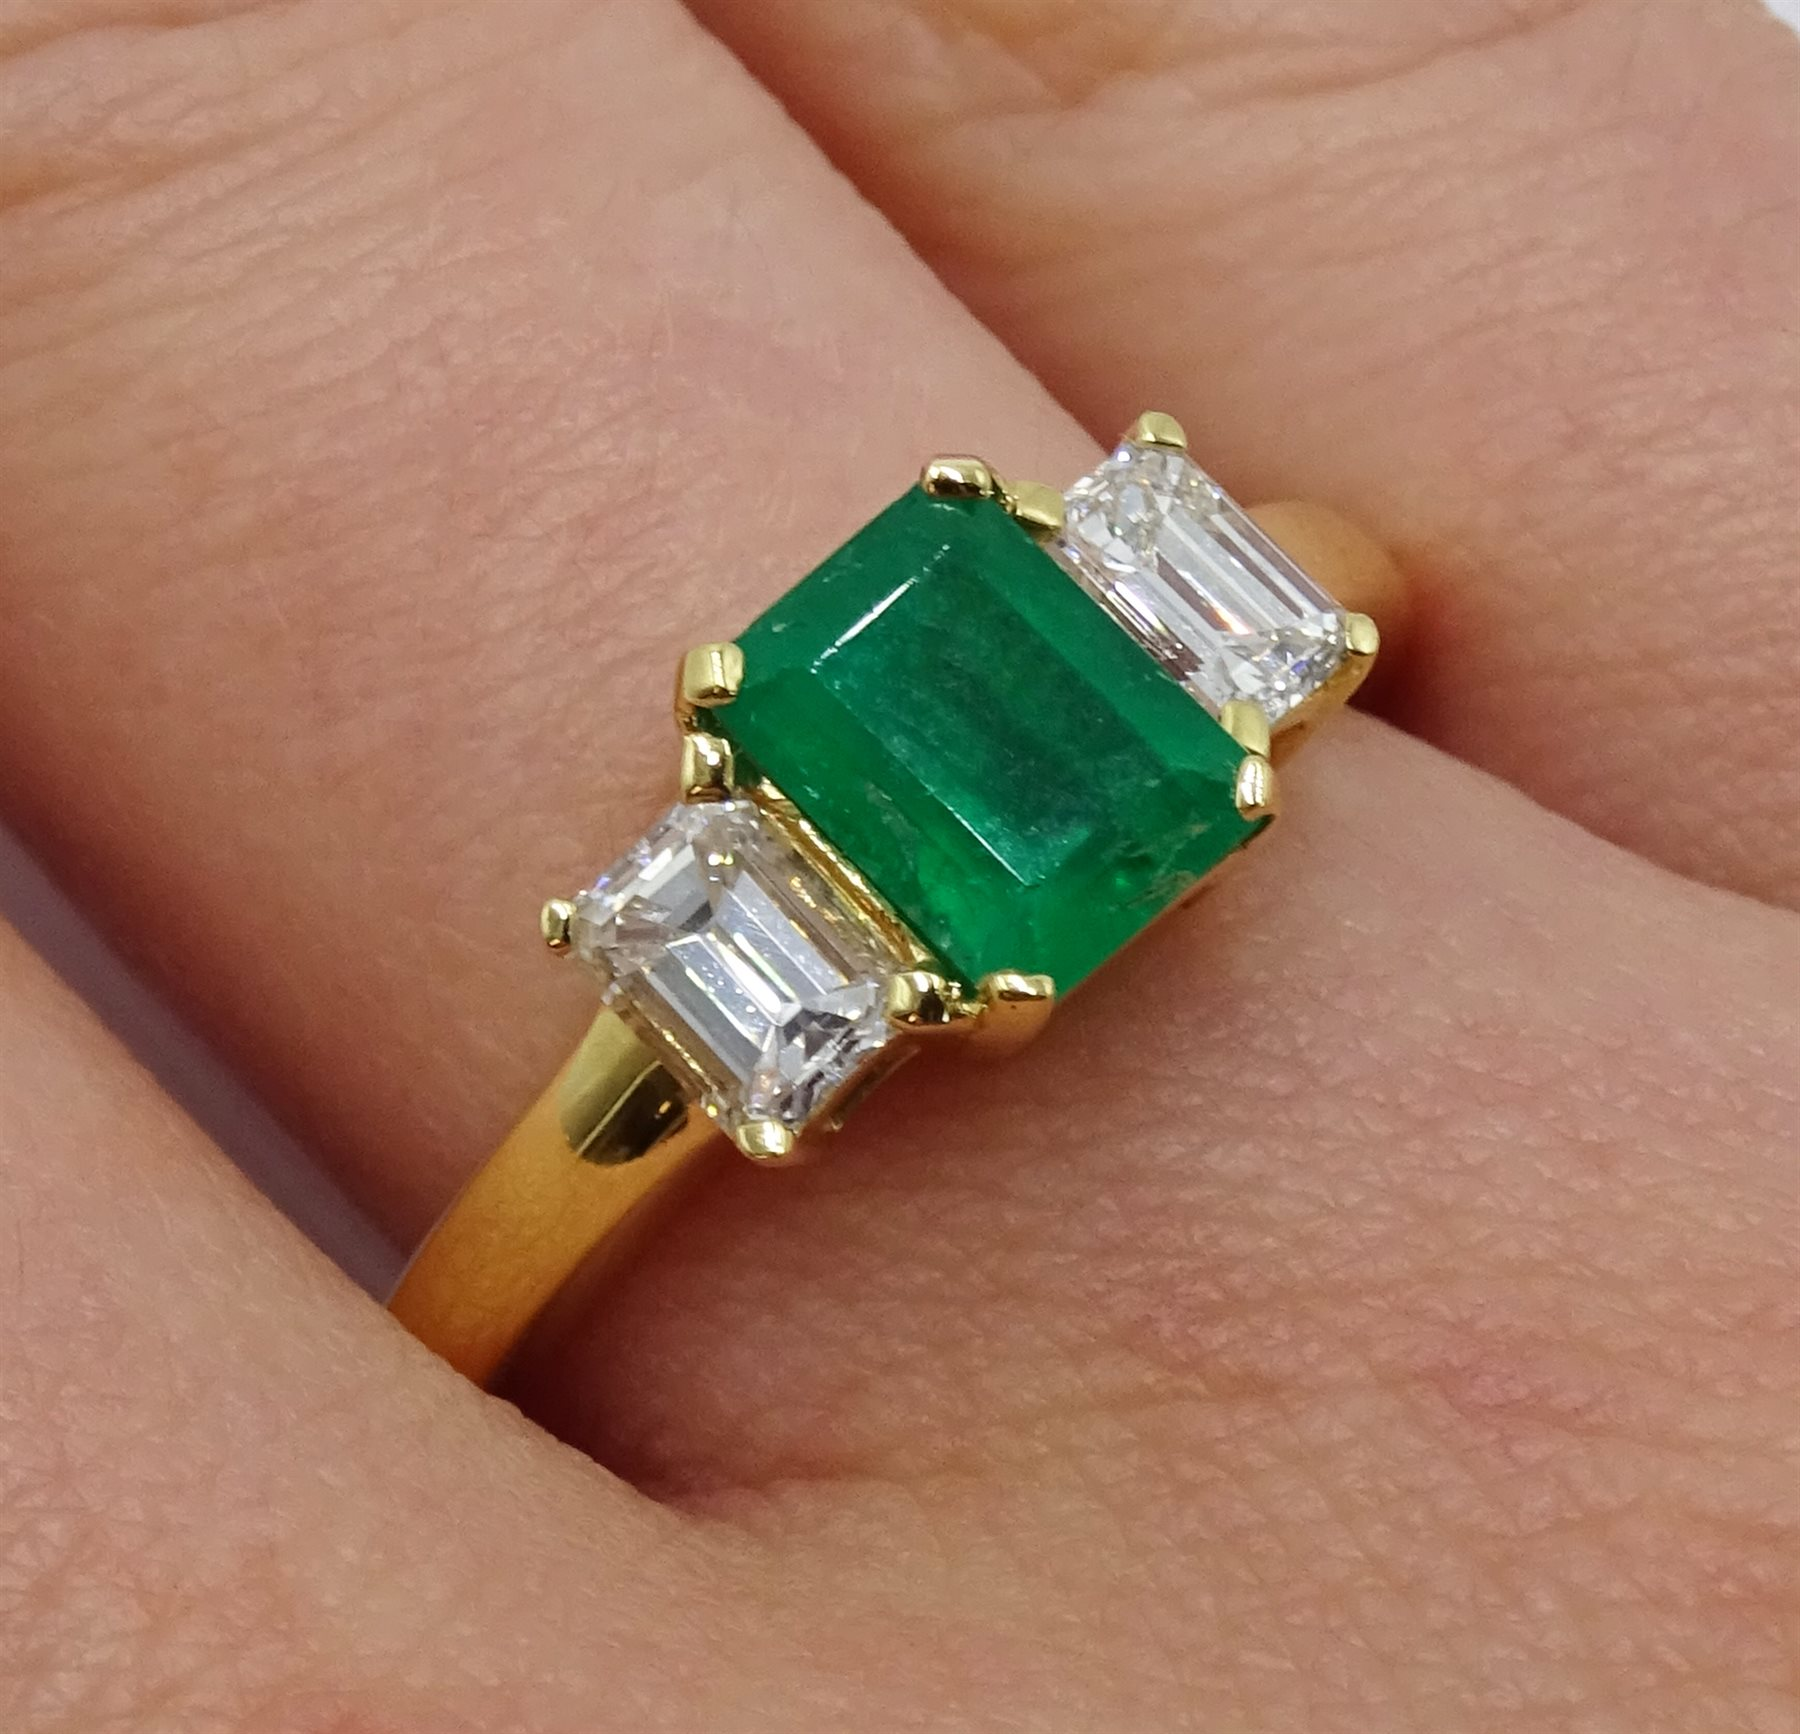 18ct gold emerald and baguette cut diamond ring - Image 2 of 4